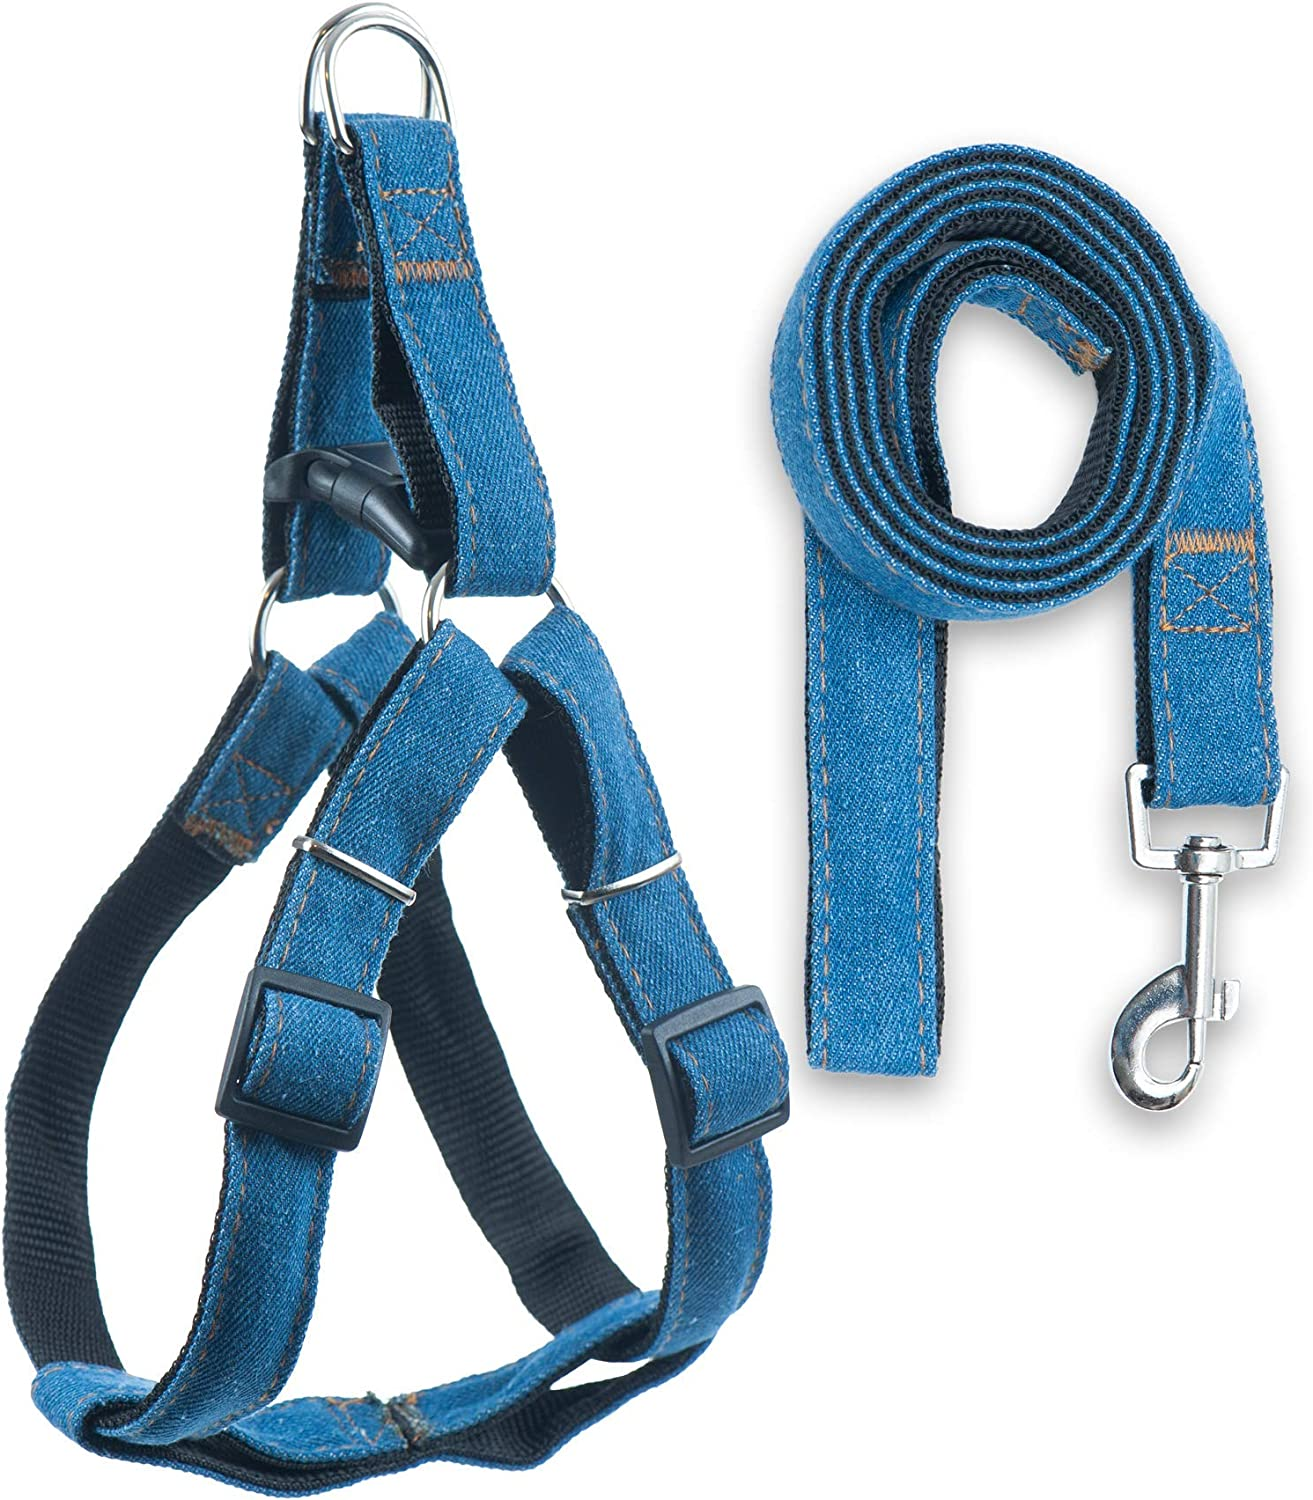 Bagoo Pets Denim Harness for Dogs. Sturdy Comfortable Fit & Performance for Small, Medium, and Large Dogs. Durable and Thick. Perfect for Walking, Running, Training (Large, Black)